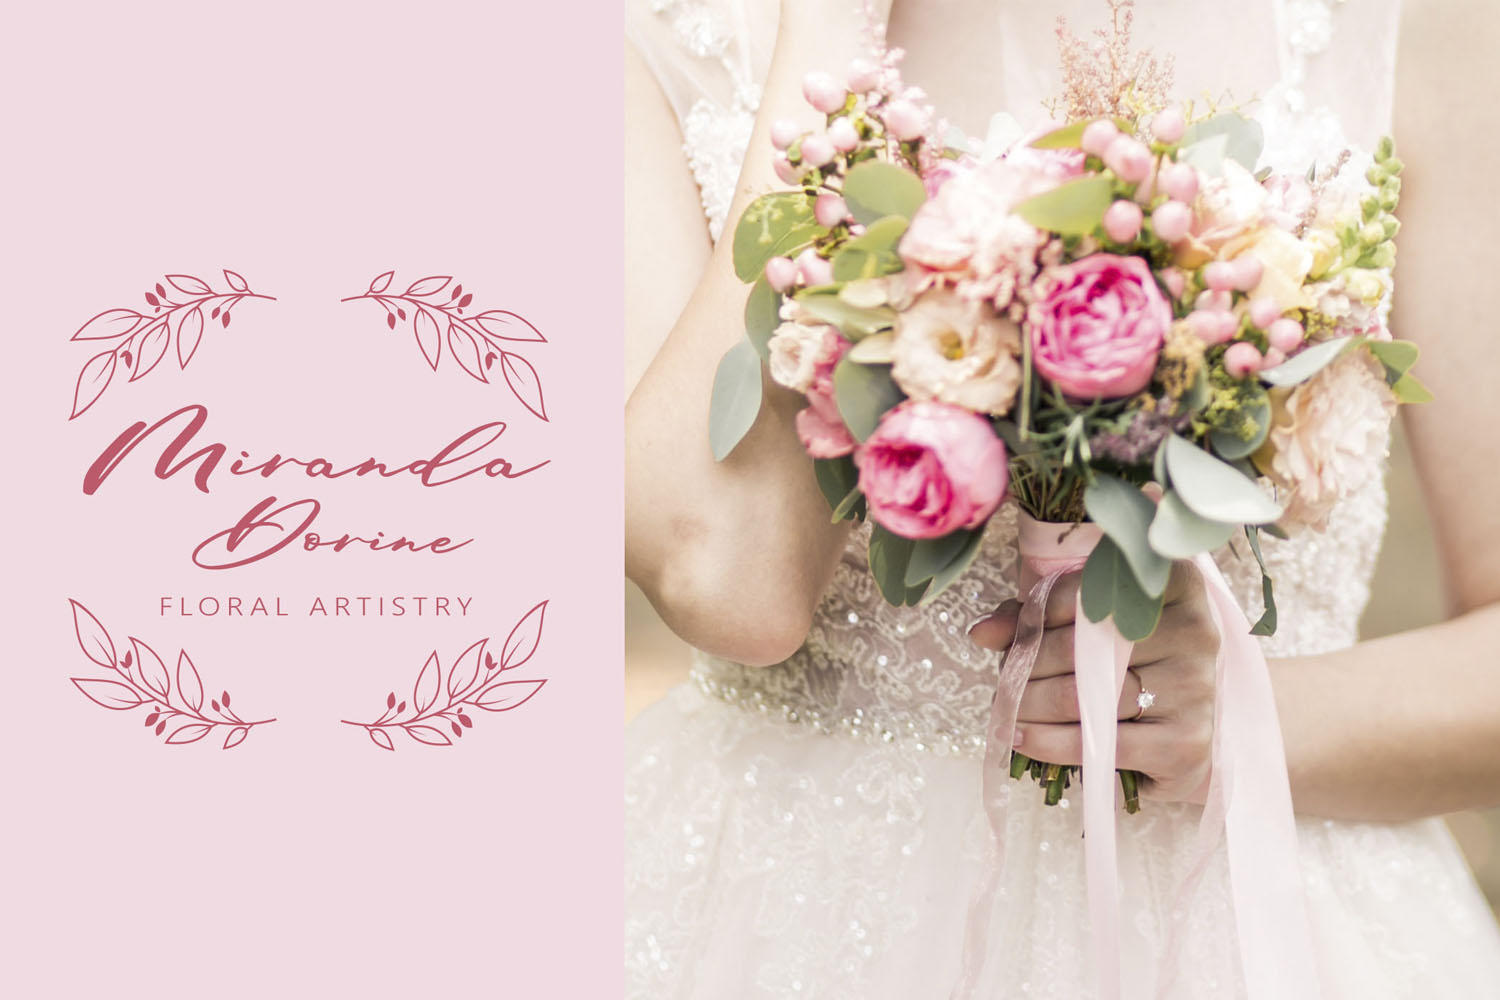 Maid Of Honor - A script font with matching doodles example image 6